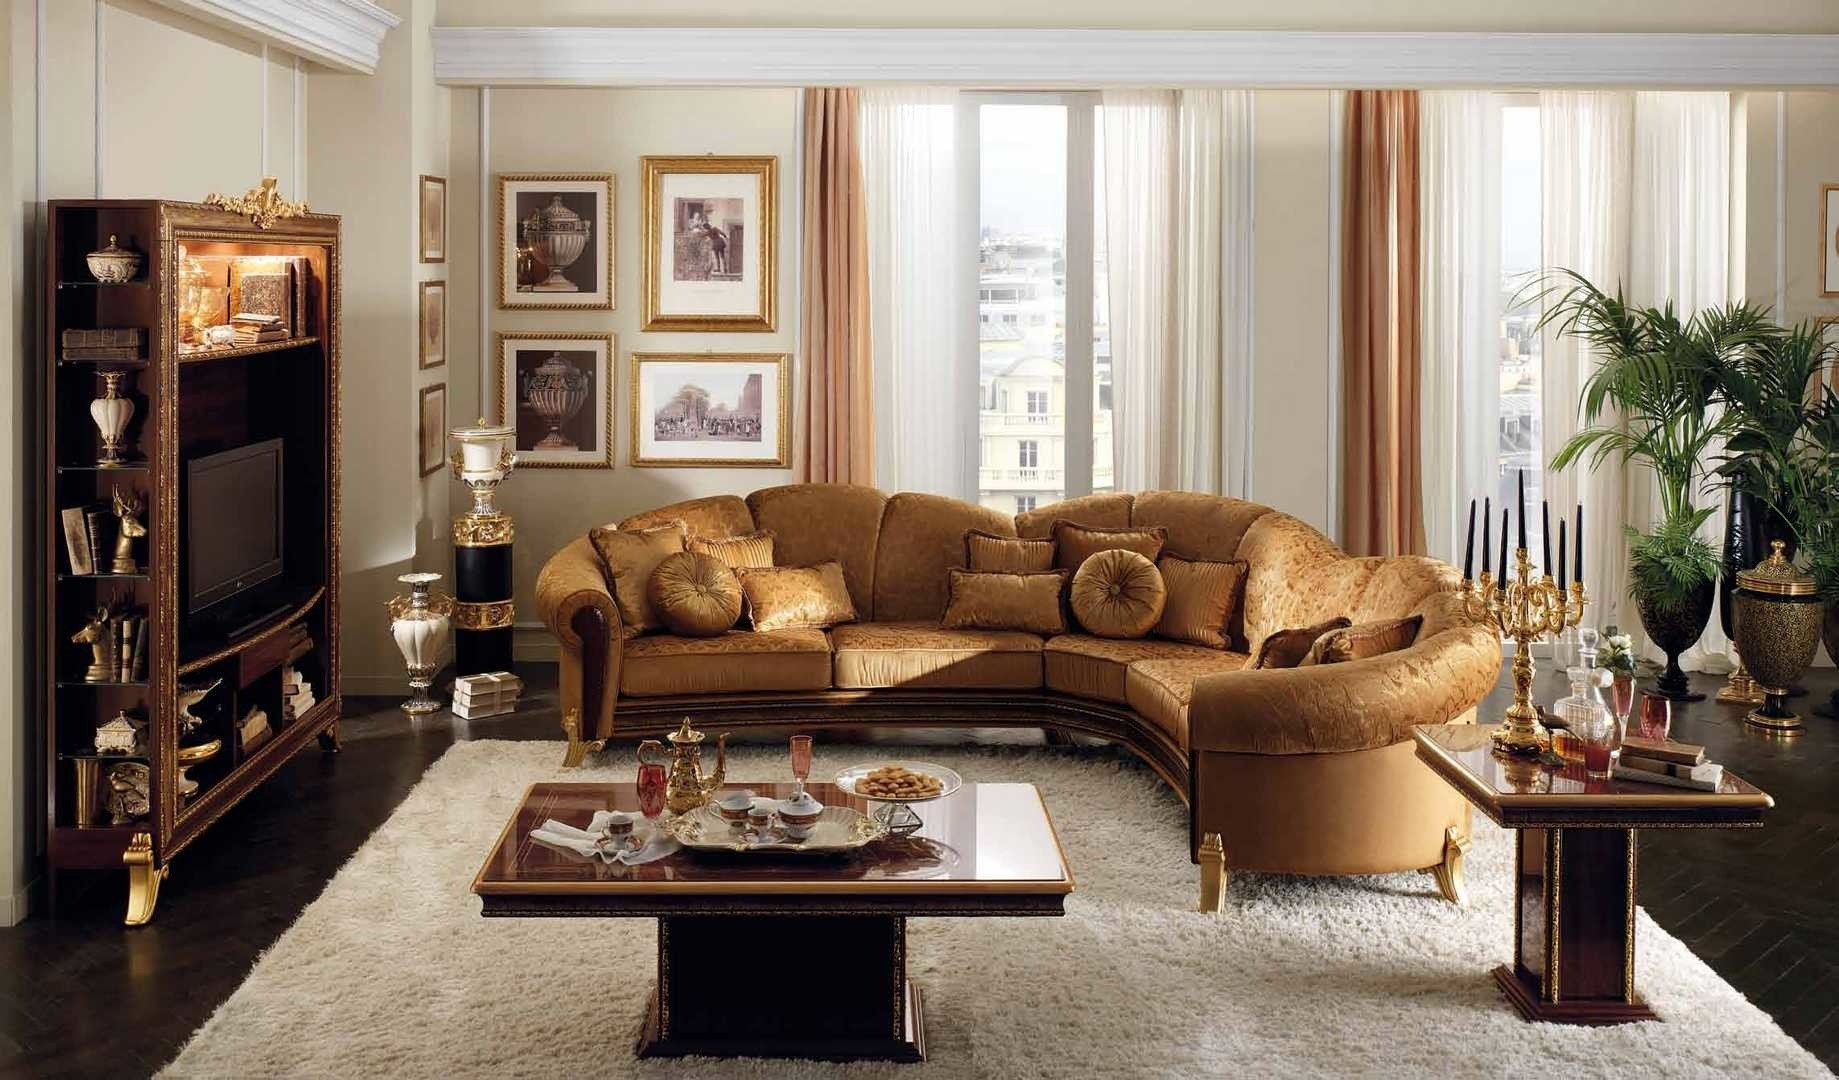 Modern Brown Living Room Decorating Ideas Cool Brown sofa Decorating Living Room Ideas